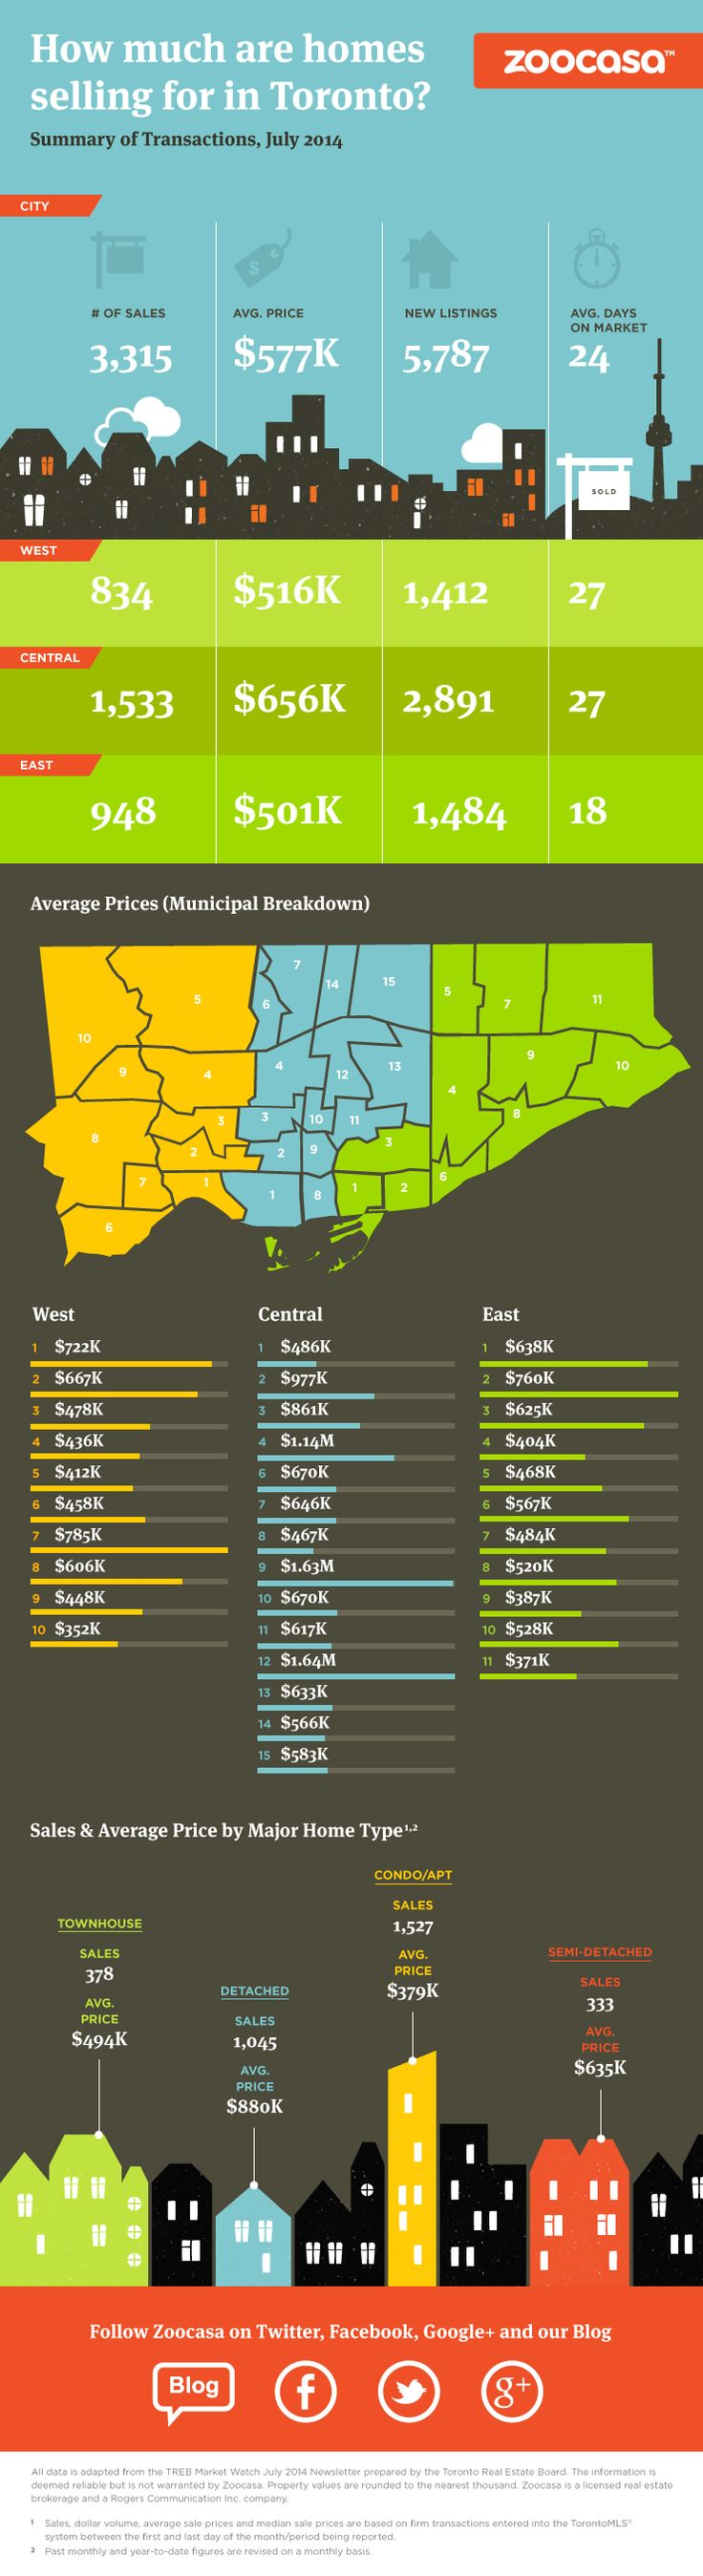 Take a look at this infographic to know how much are homes selling for in Toronto.